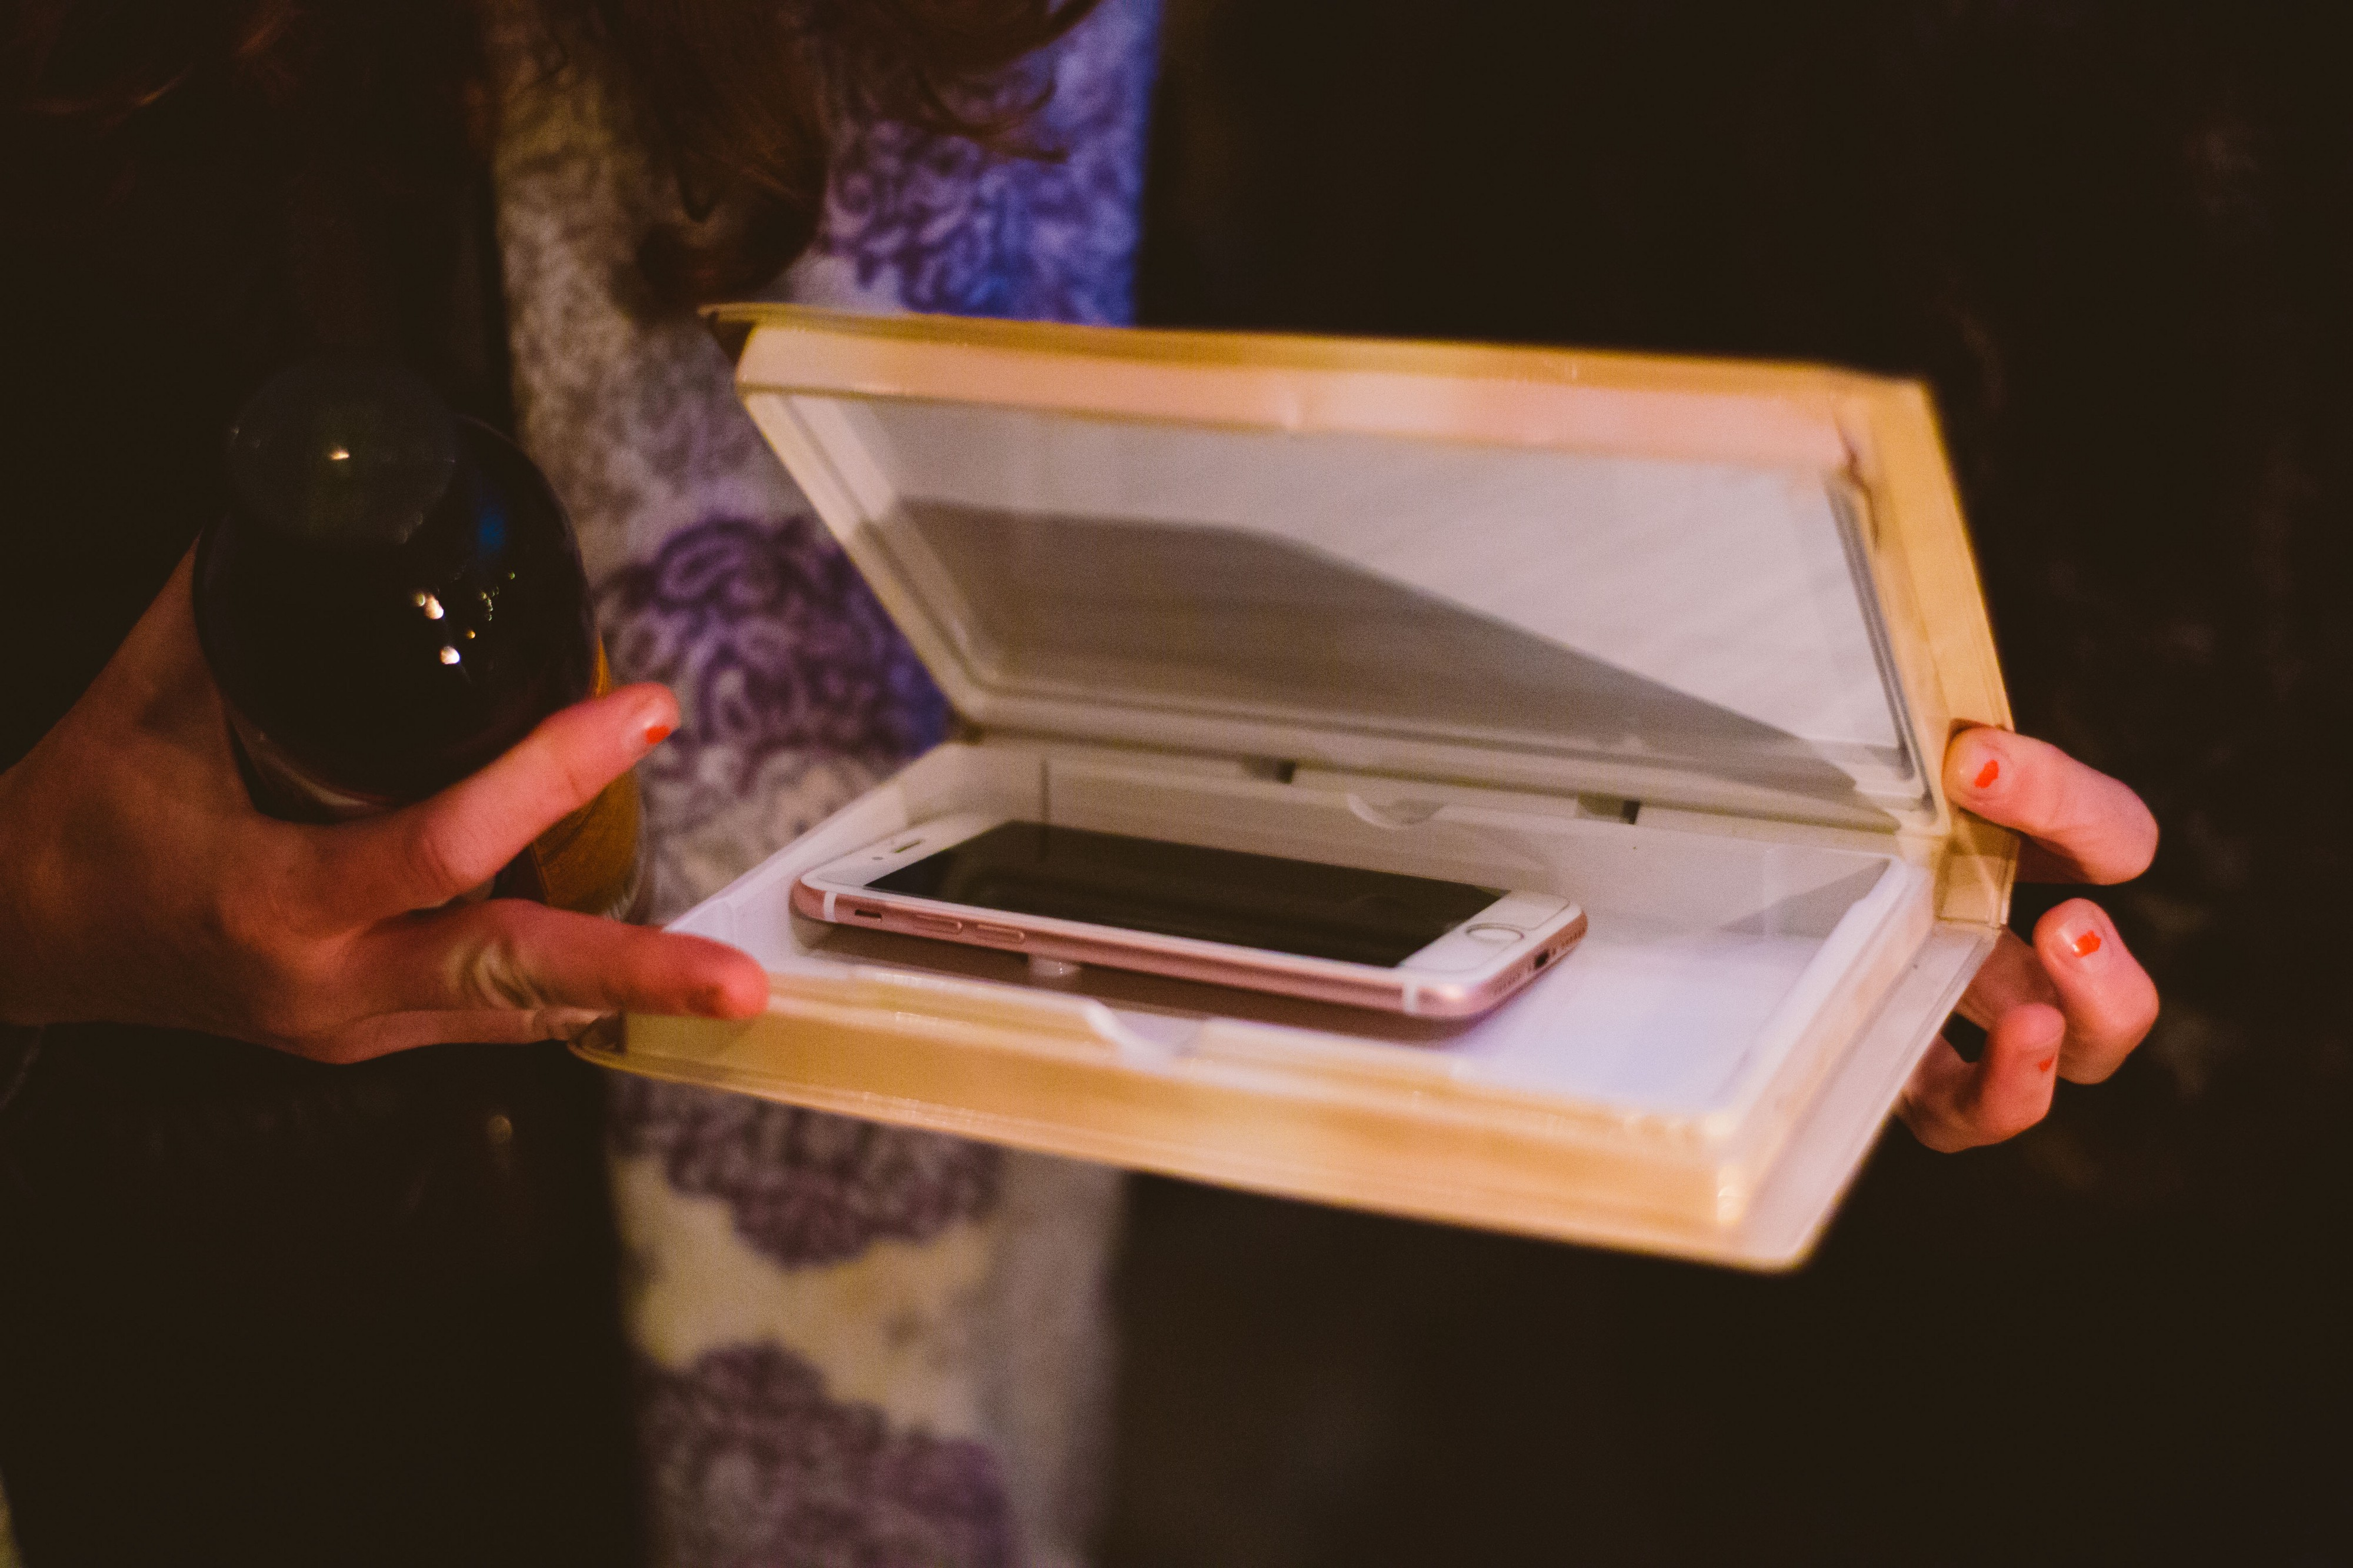 A photo of a iPhone being put away in a case.